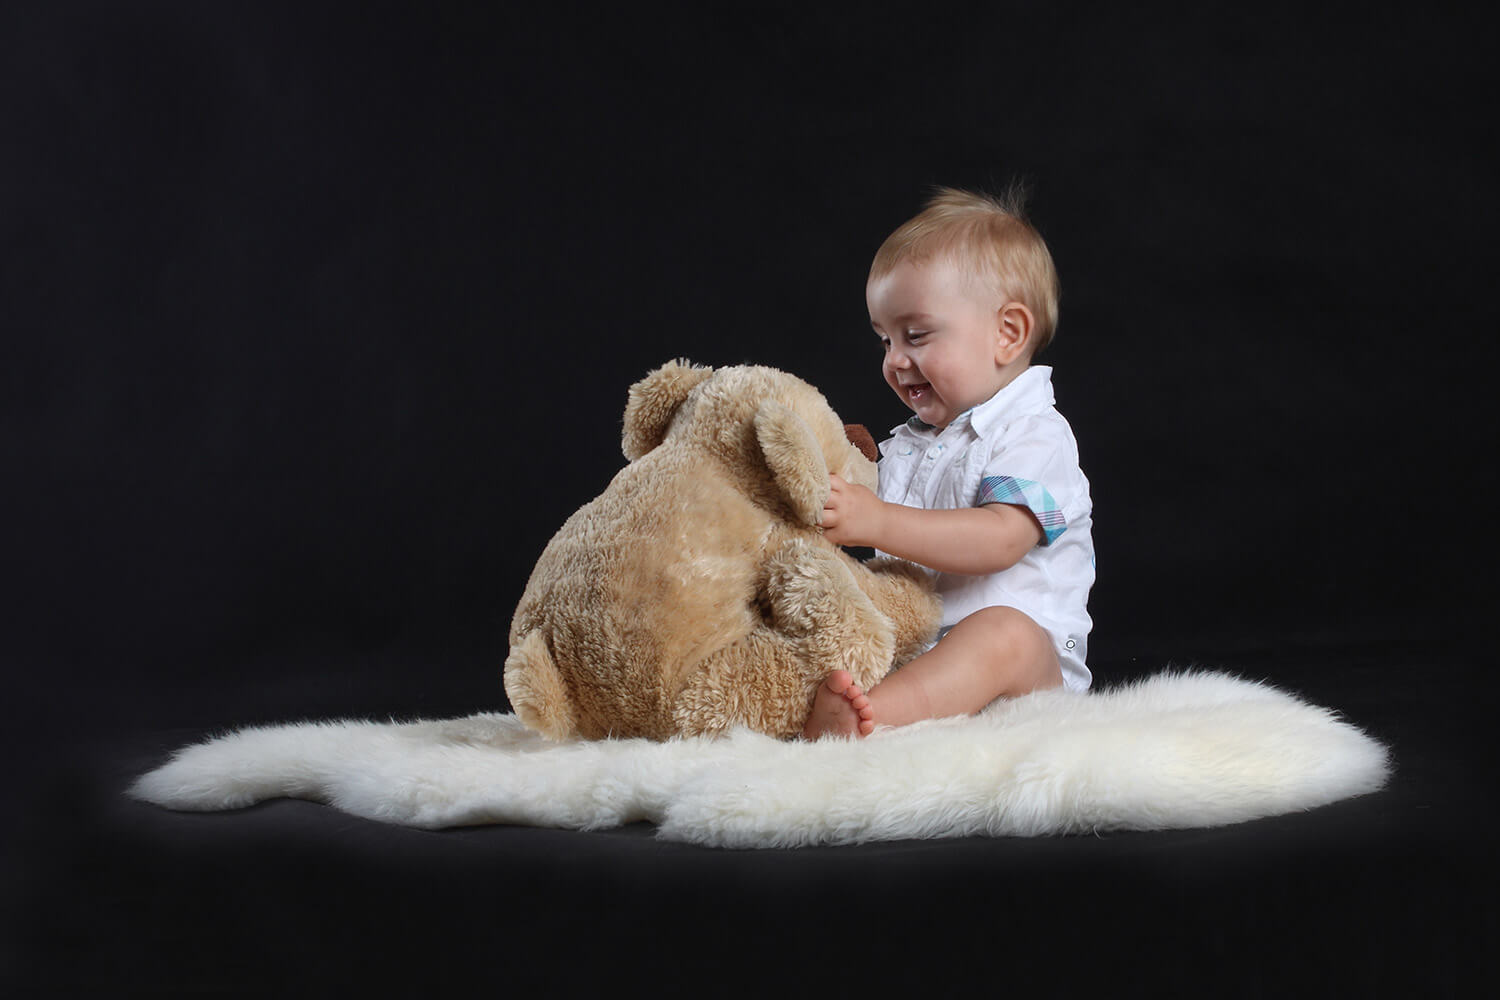 family photo of a toddler on a fur with a bear on a dark background